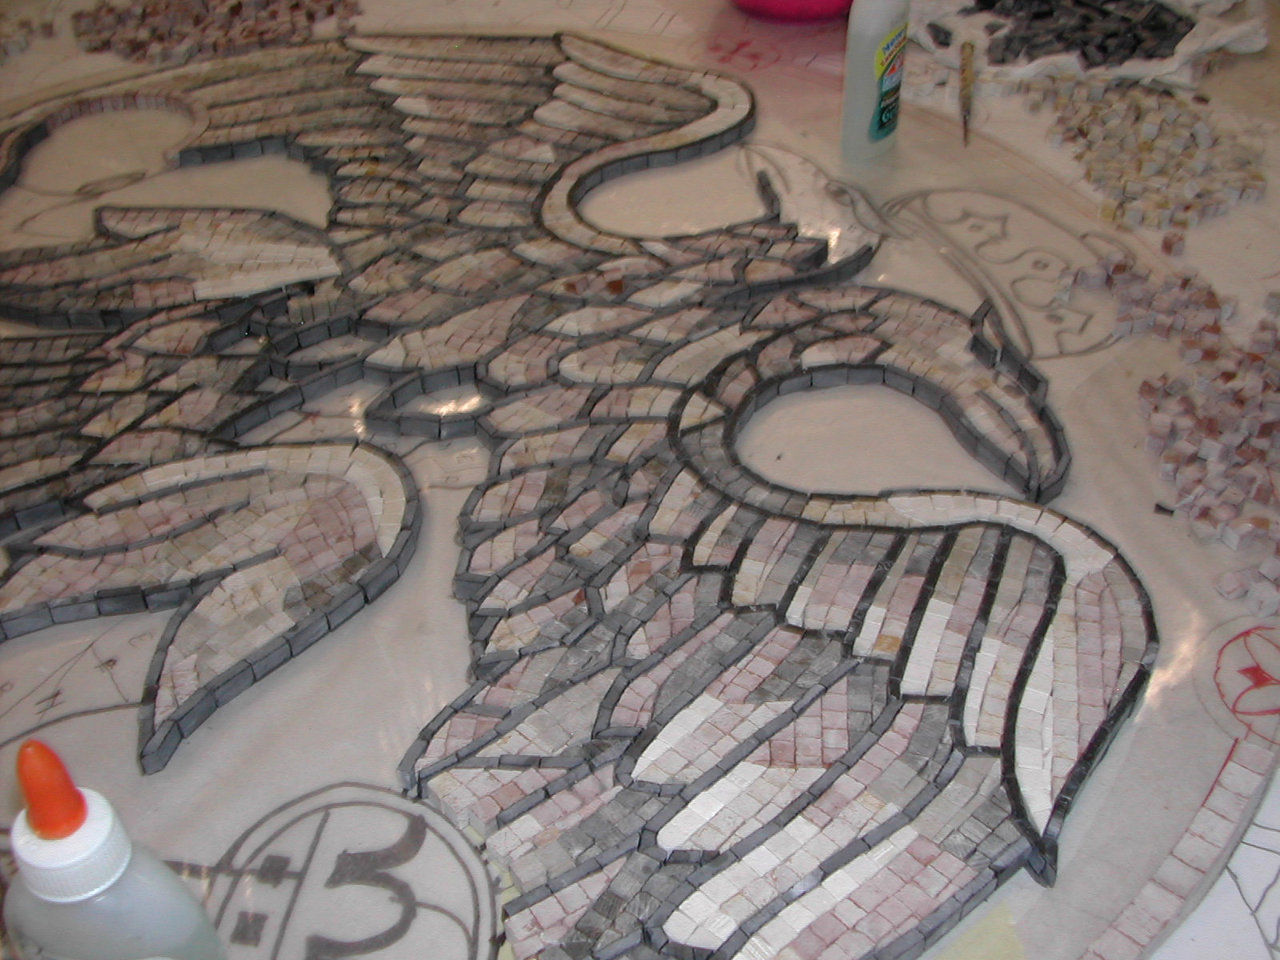 working on eagle